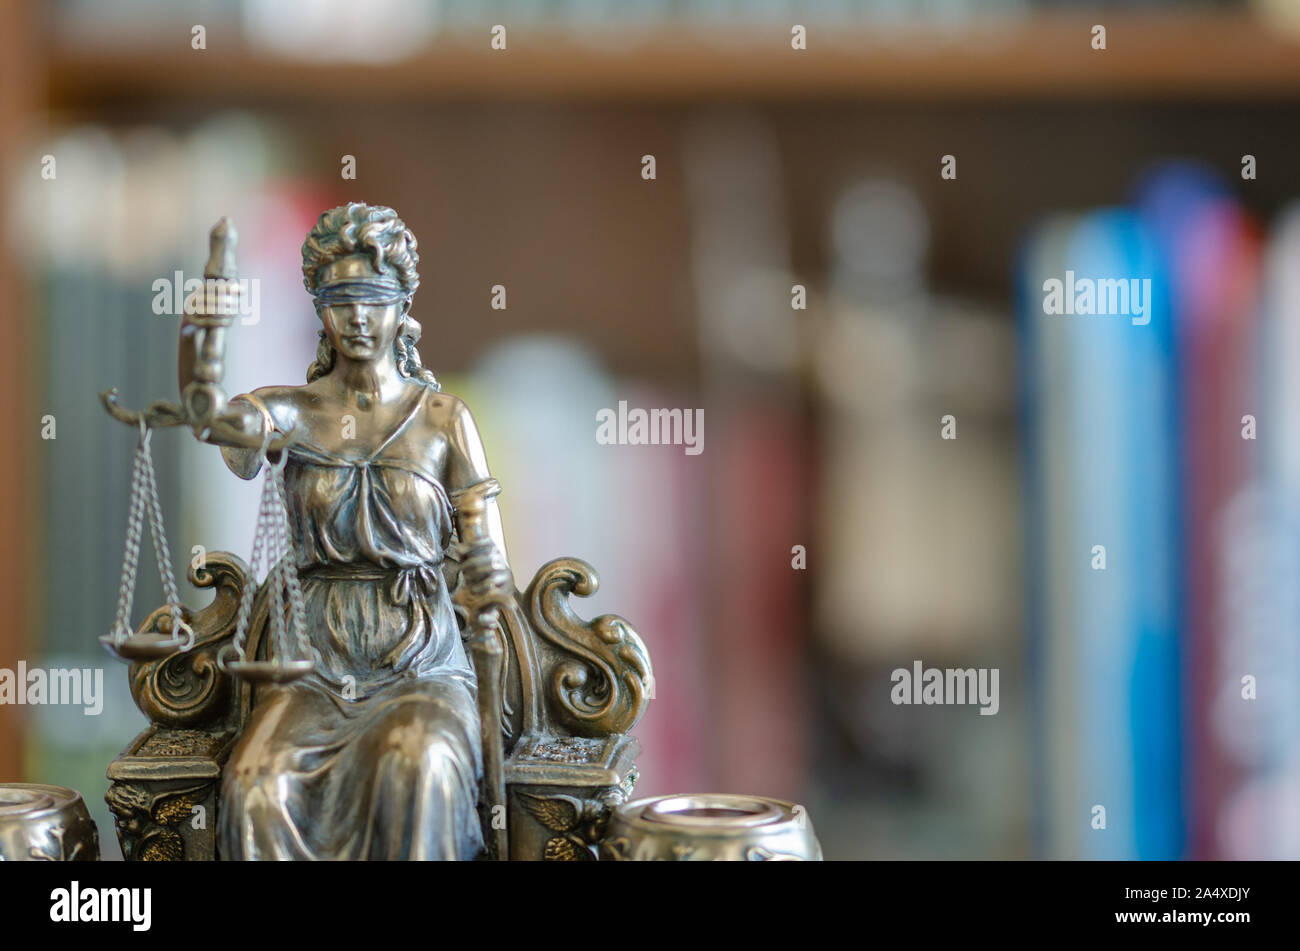 Statue of justice in front of library, law concept. Stock Photo